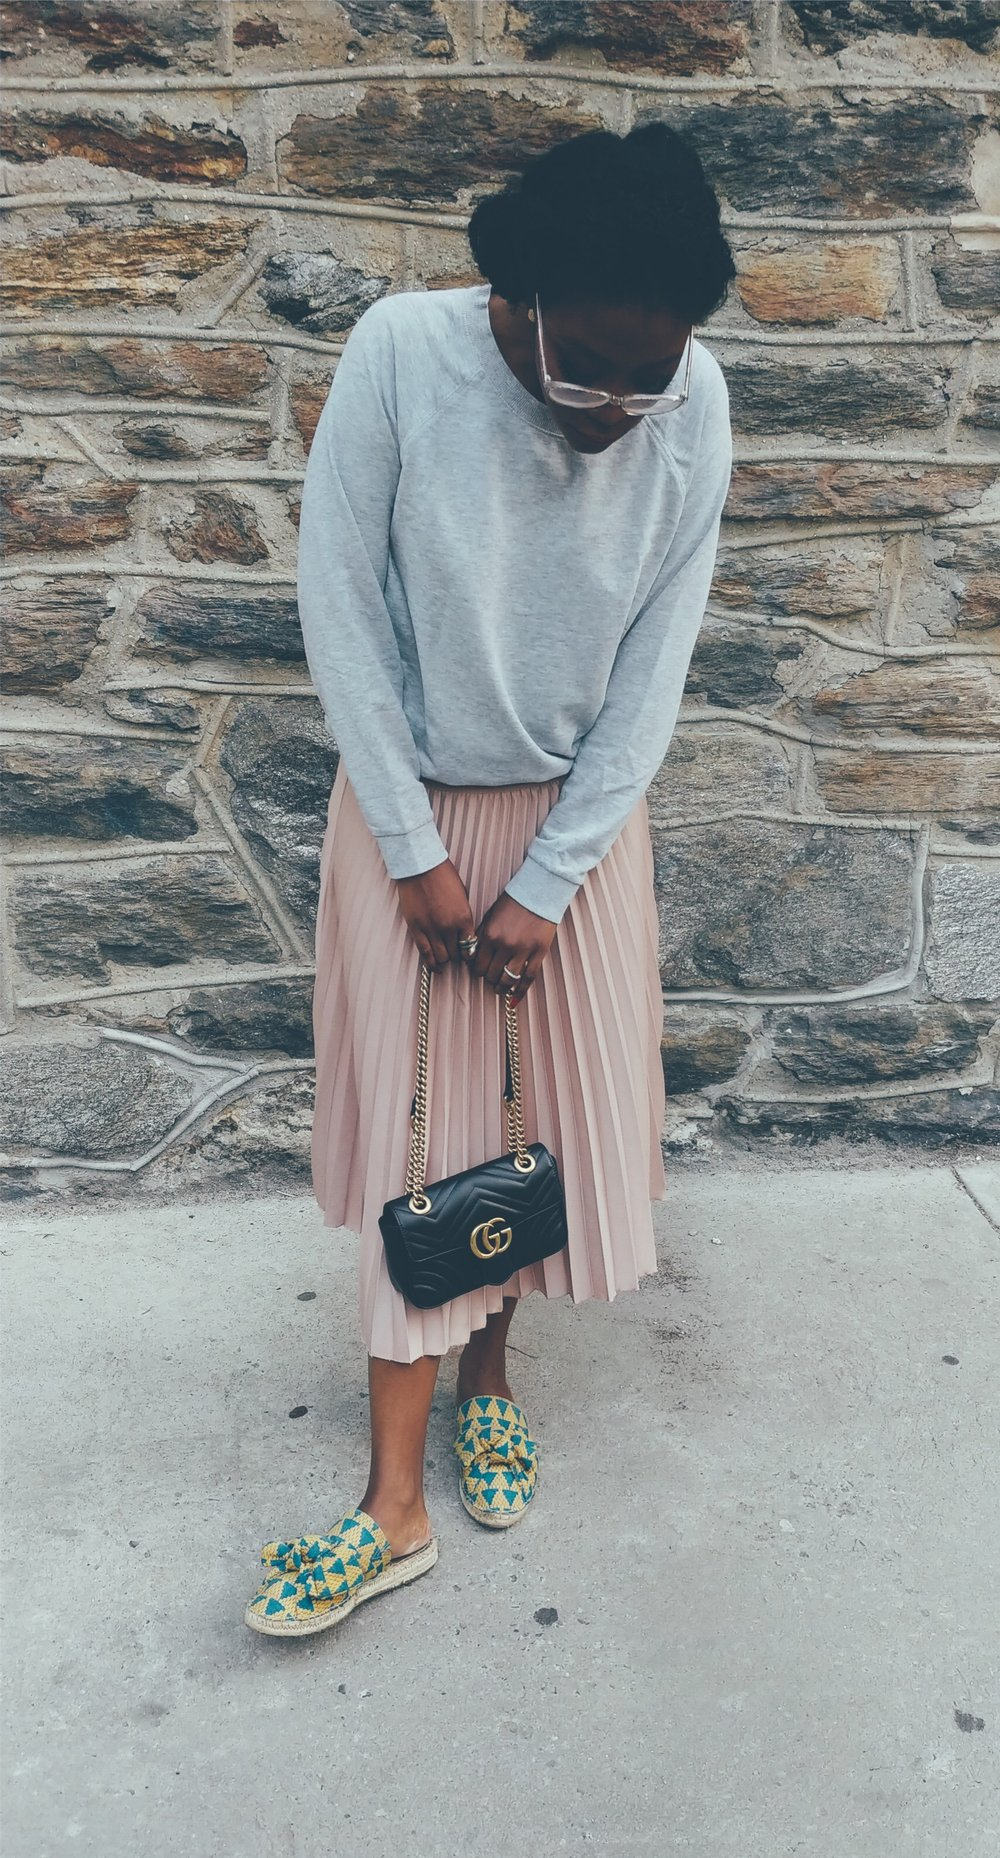 The casual sweatshirt makes the skirt less formal.